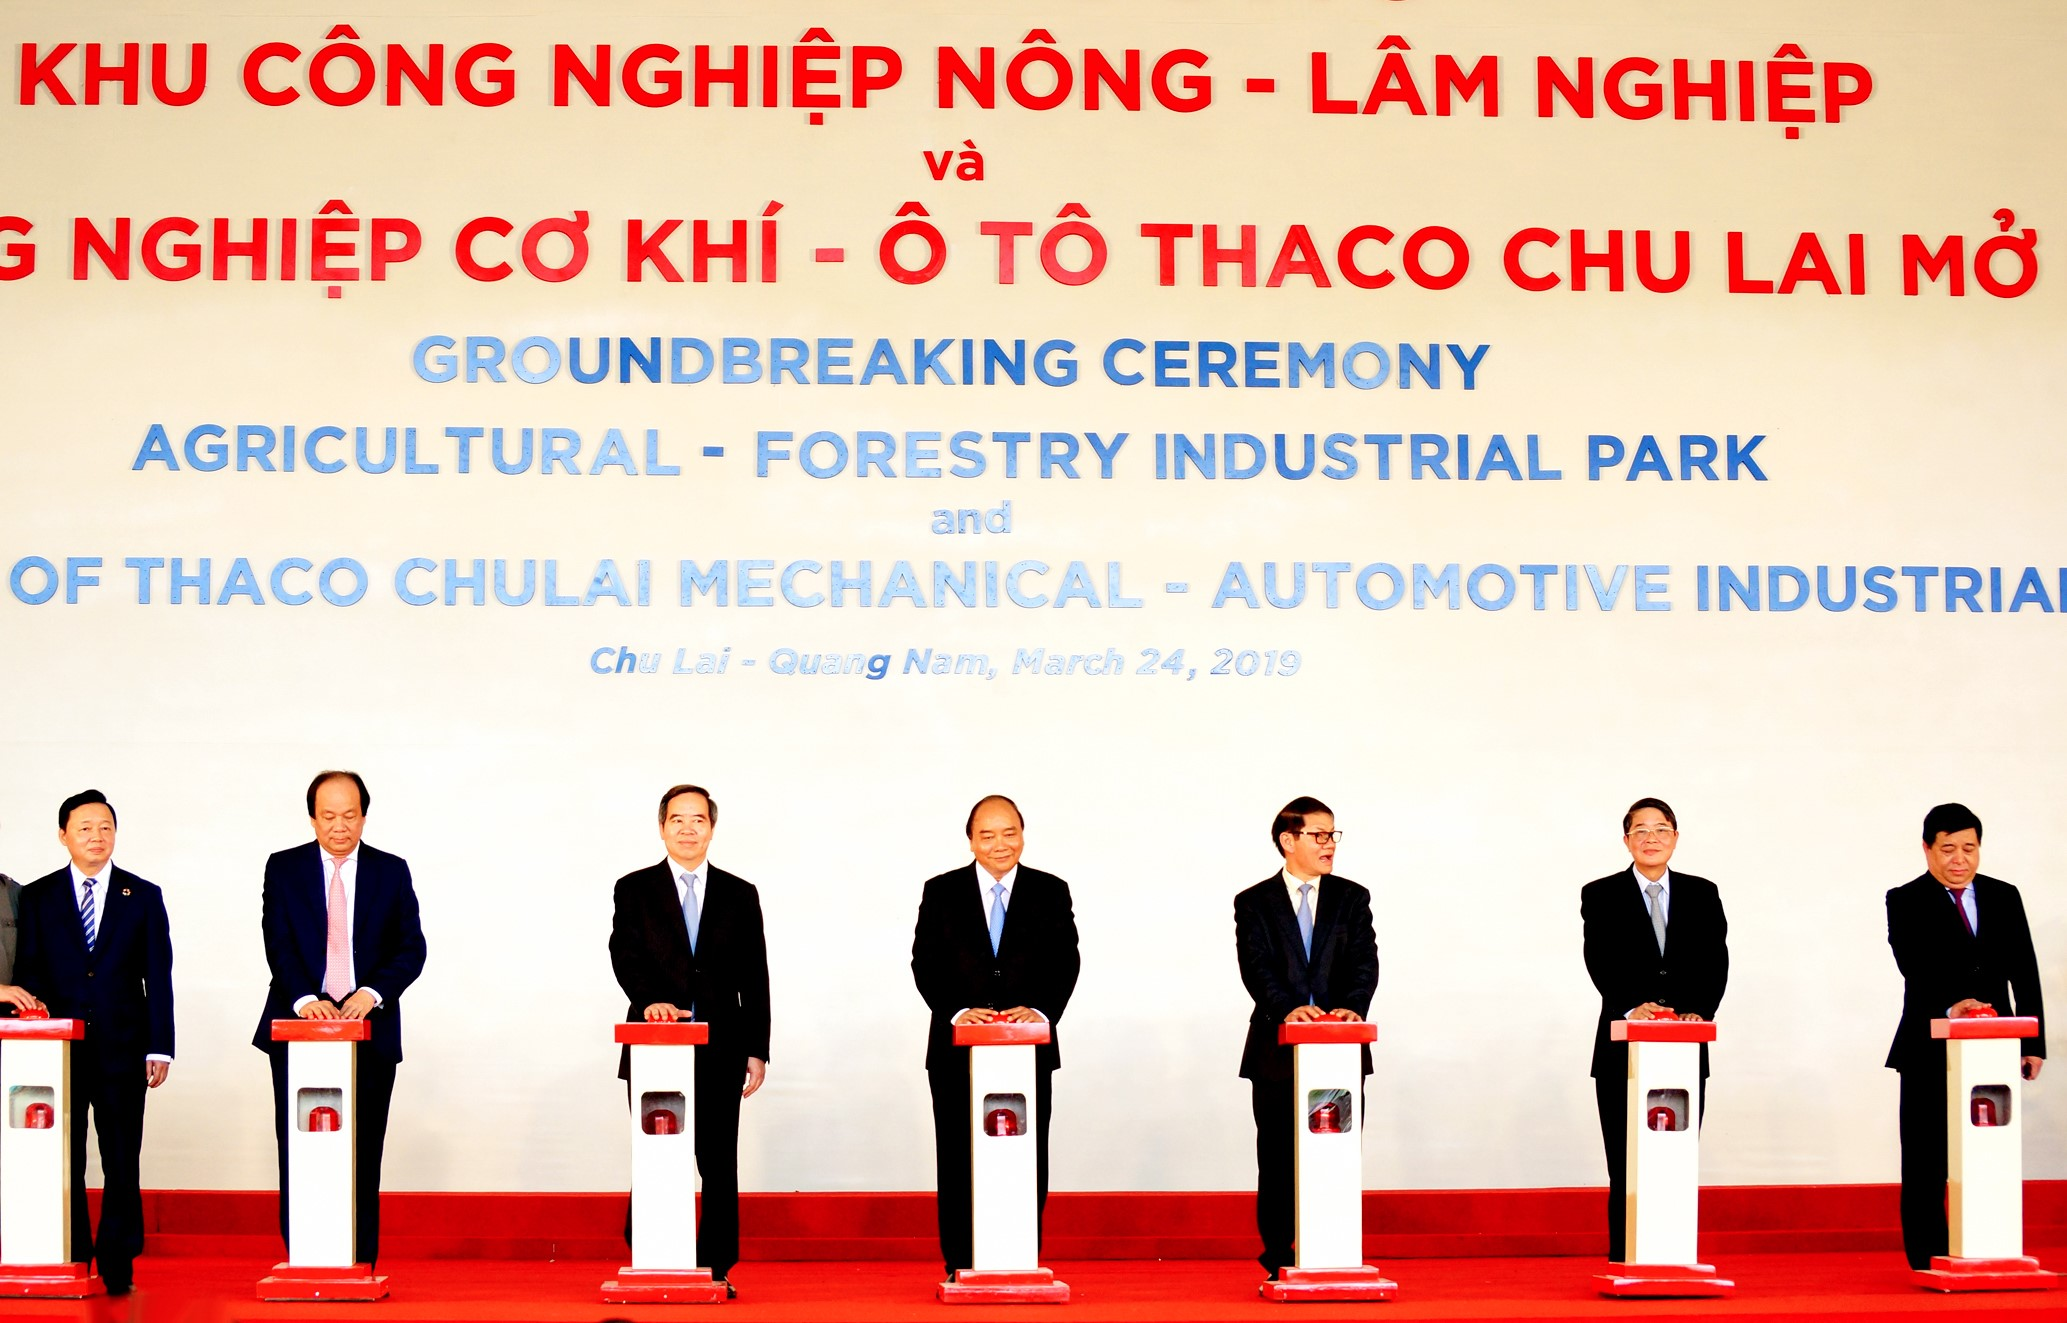 The groundbreaking ceremony of Agricultural-Forestry Industrial Park and Expansion of THACO Chu Lai Mechanical Automotive Industrial Park